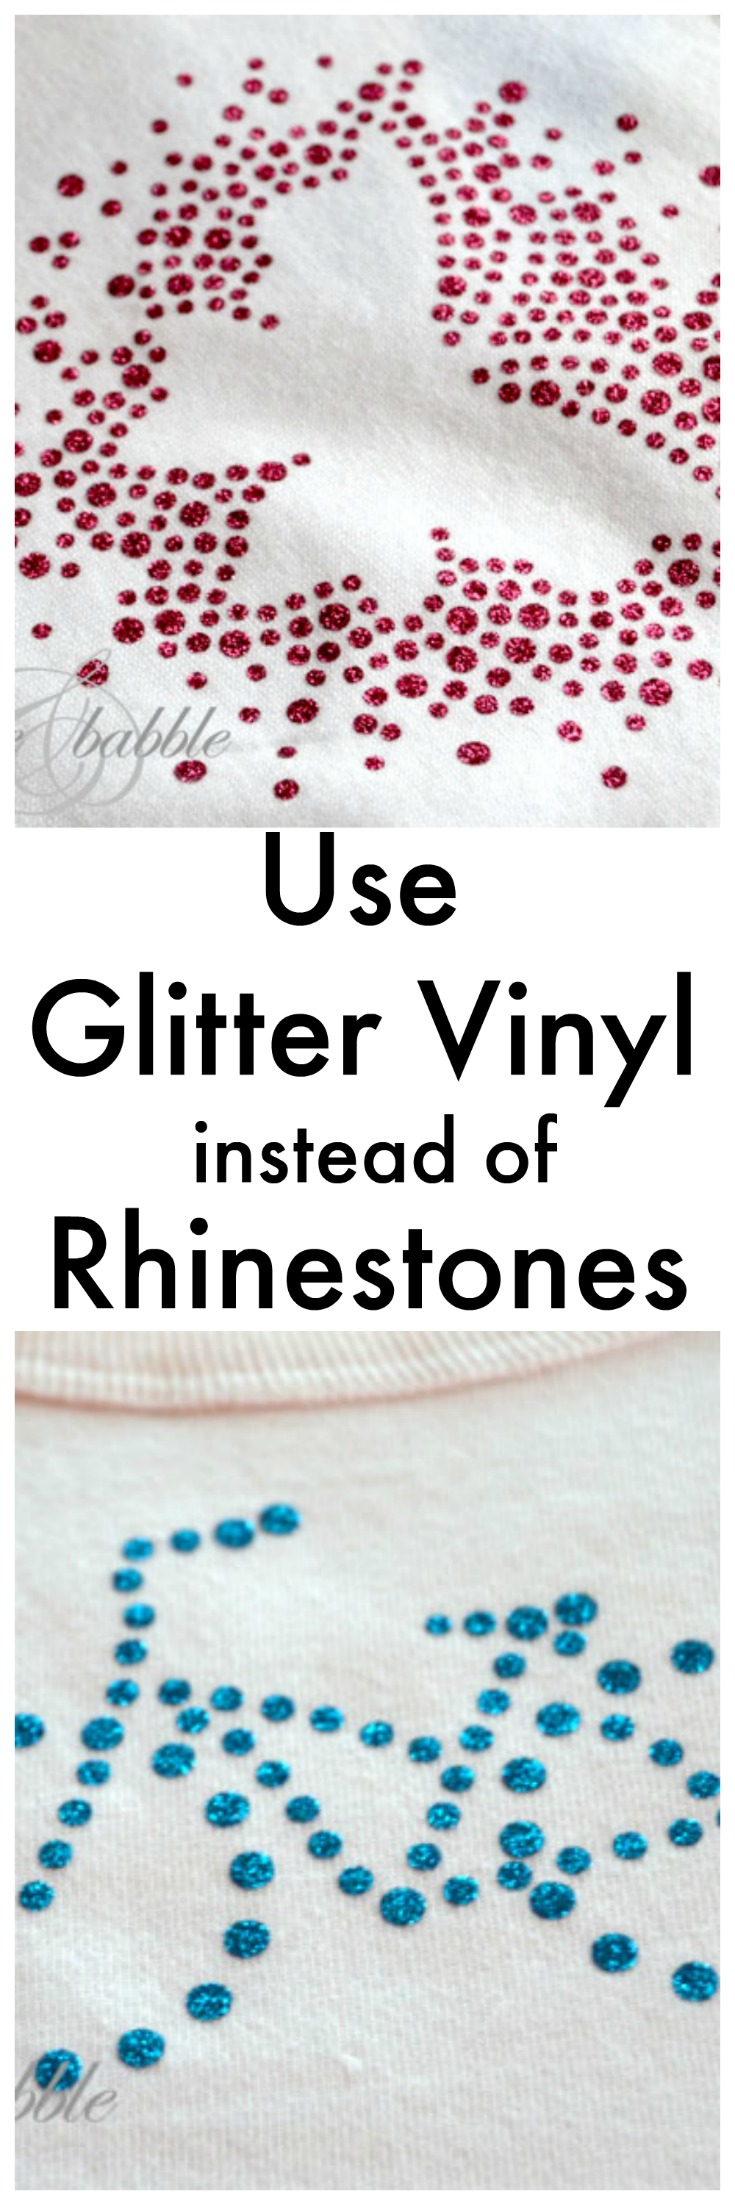 Use glitter vinyl instead of rhinestones with your Silhouette machine